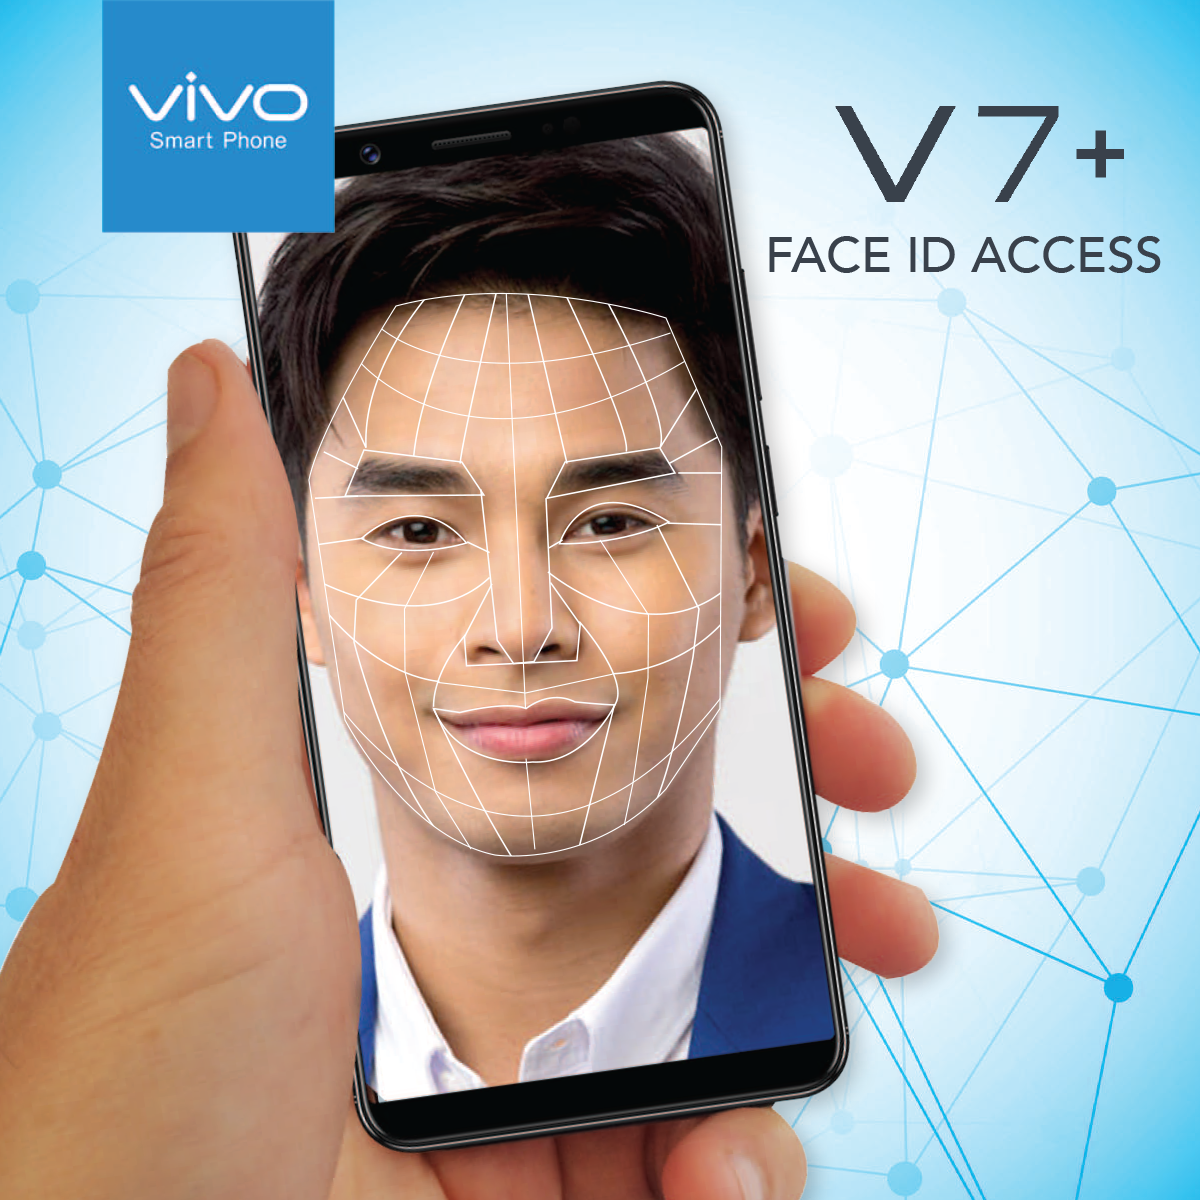 Vivo welcomes you to the future with the V7+ high technology Face ID Access feature